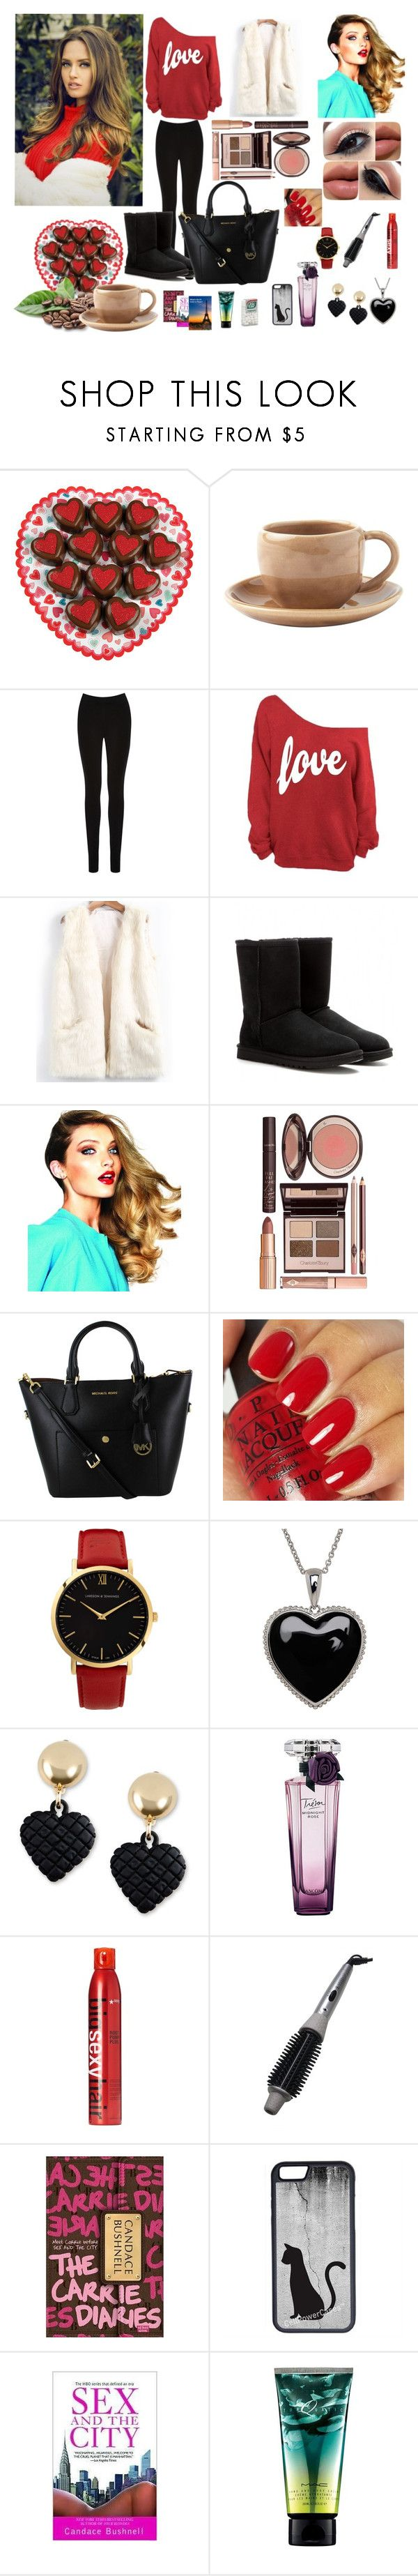 """##13"" by alena-hodzic ❤ liked on Polyvore featuring Wilton, Toast, Oasis, UGG Australia, Charlotte Tilbury, OPI, Larsson & Jennings, Lord & Taylor, Moschino and Lancôme"